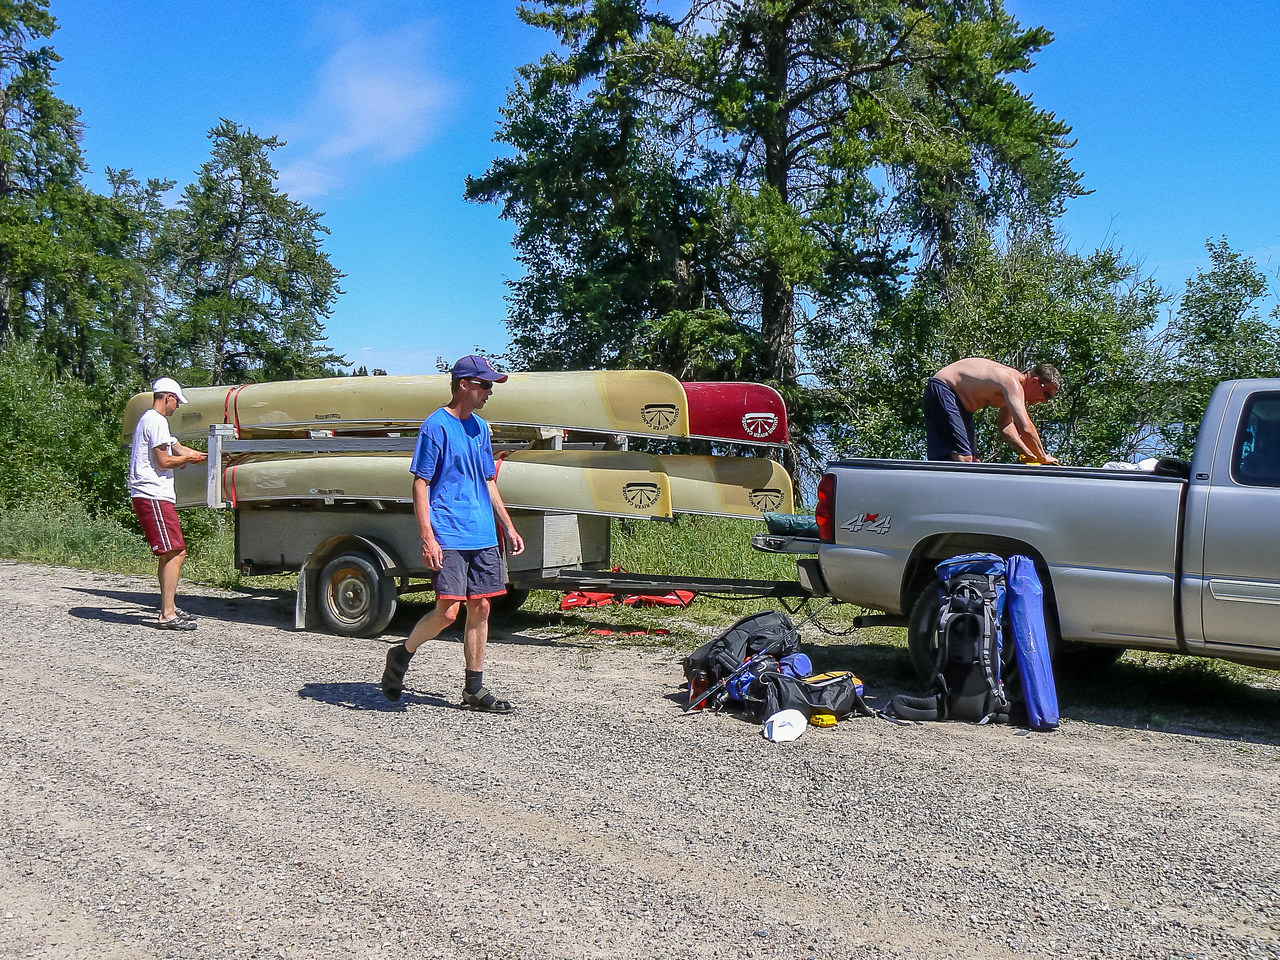 Another canoe trip comes to an end.